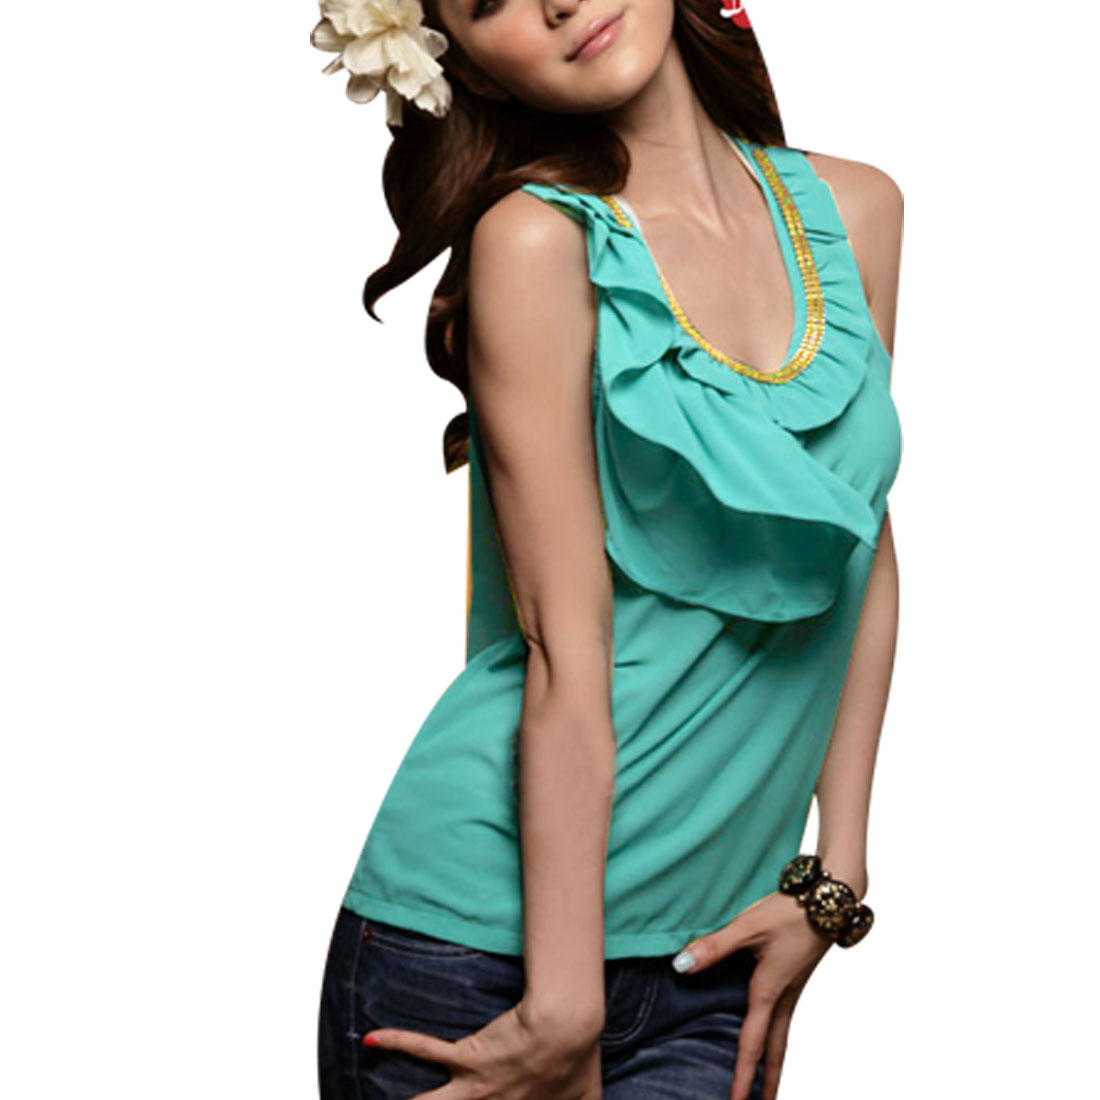 Ladies Gold Tone Chain Decor Sccop Neck Sleeveless Chiffon Shirt Green XS